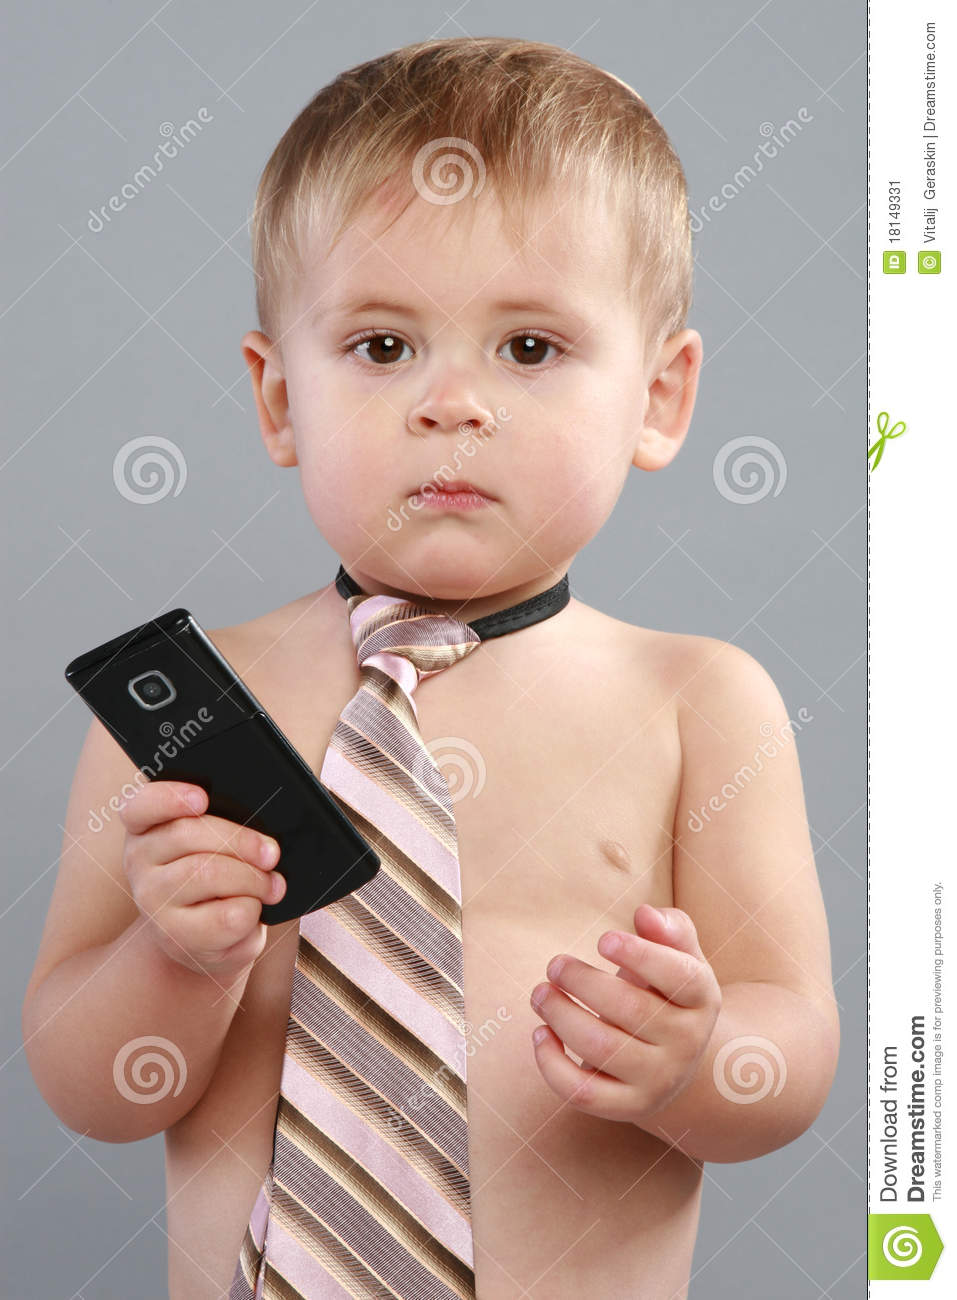 Little Boy Wearing A Tie And A Cellphone Stock Image